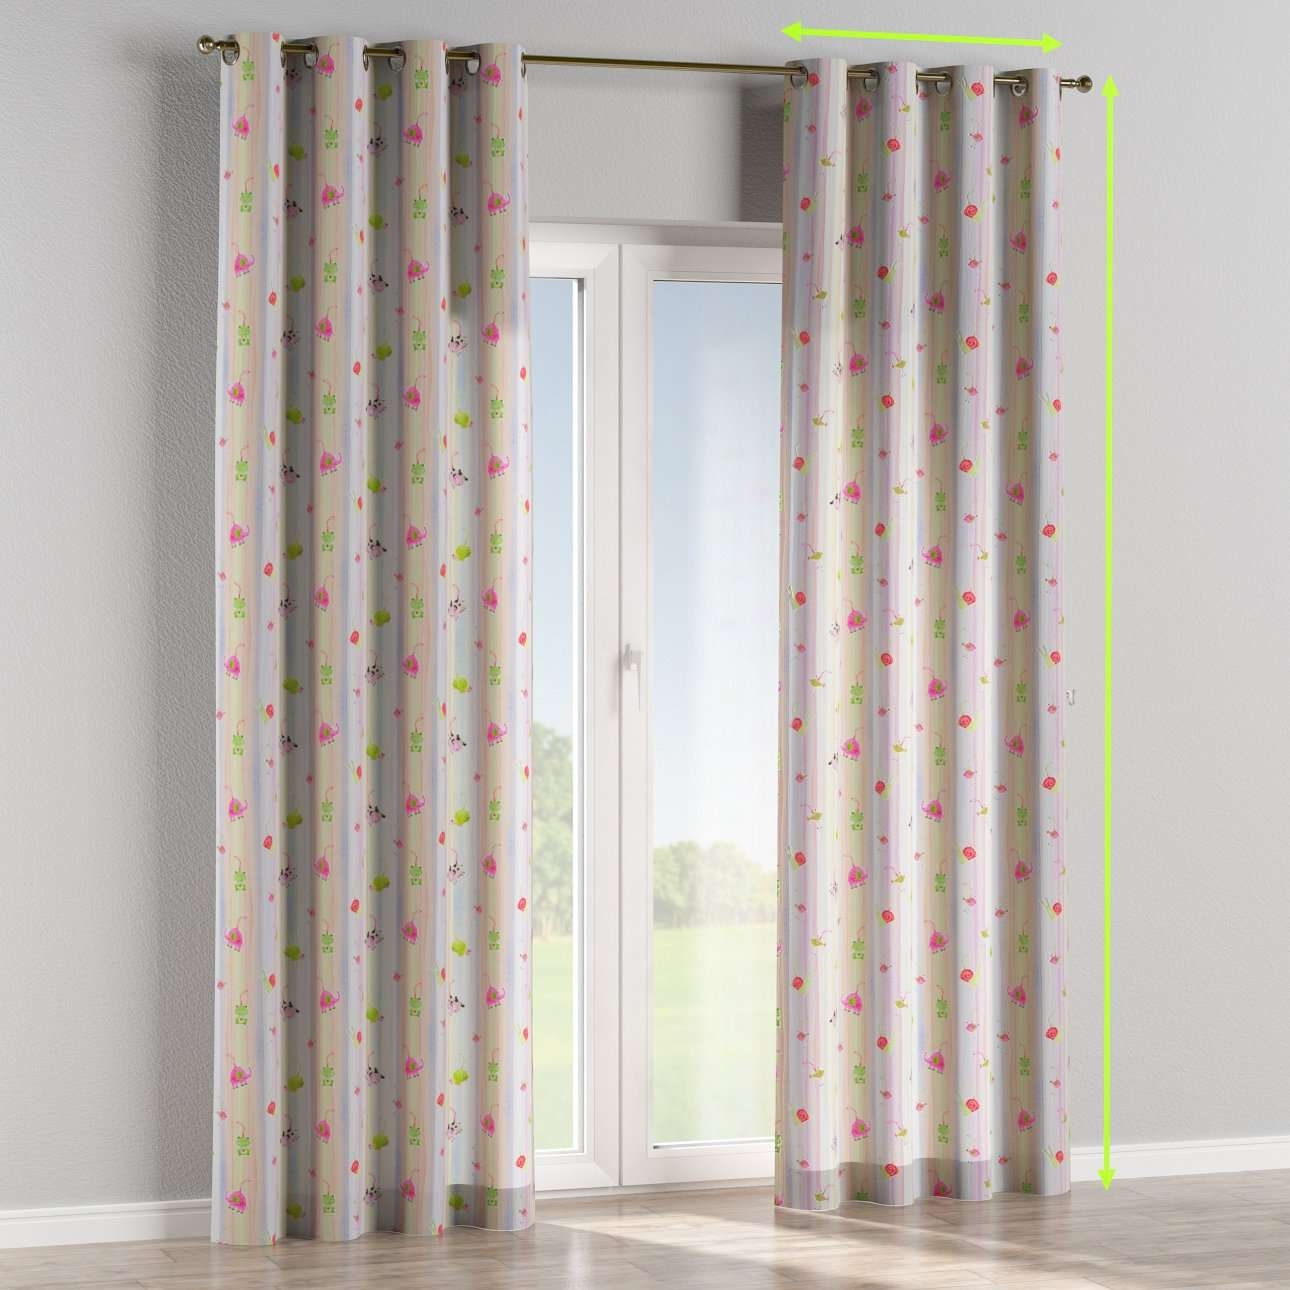 Eyelet curtains in collection Apanona, fabric: 151-05